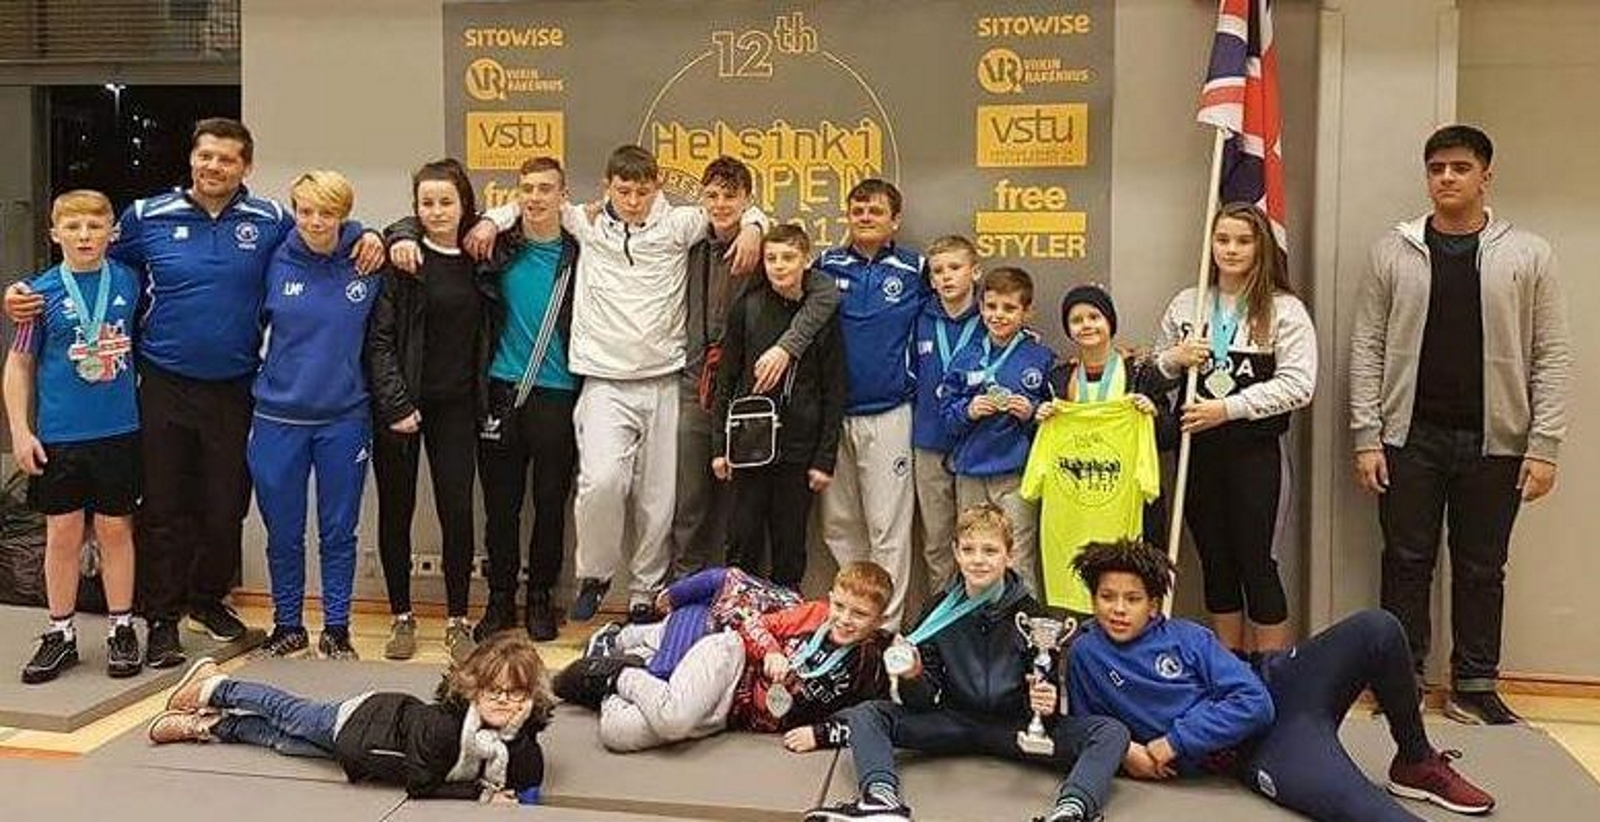 Members of Bolton Olympic Wrestling Club and the British national talent squad at the Helsinki Open